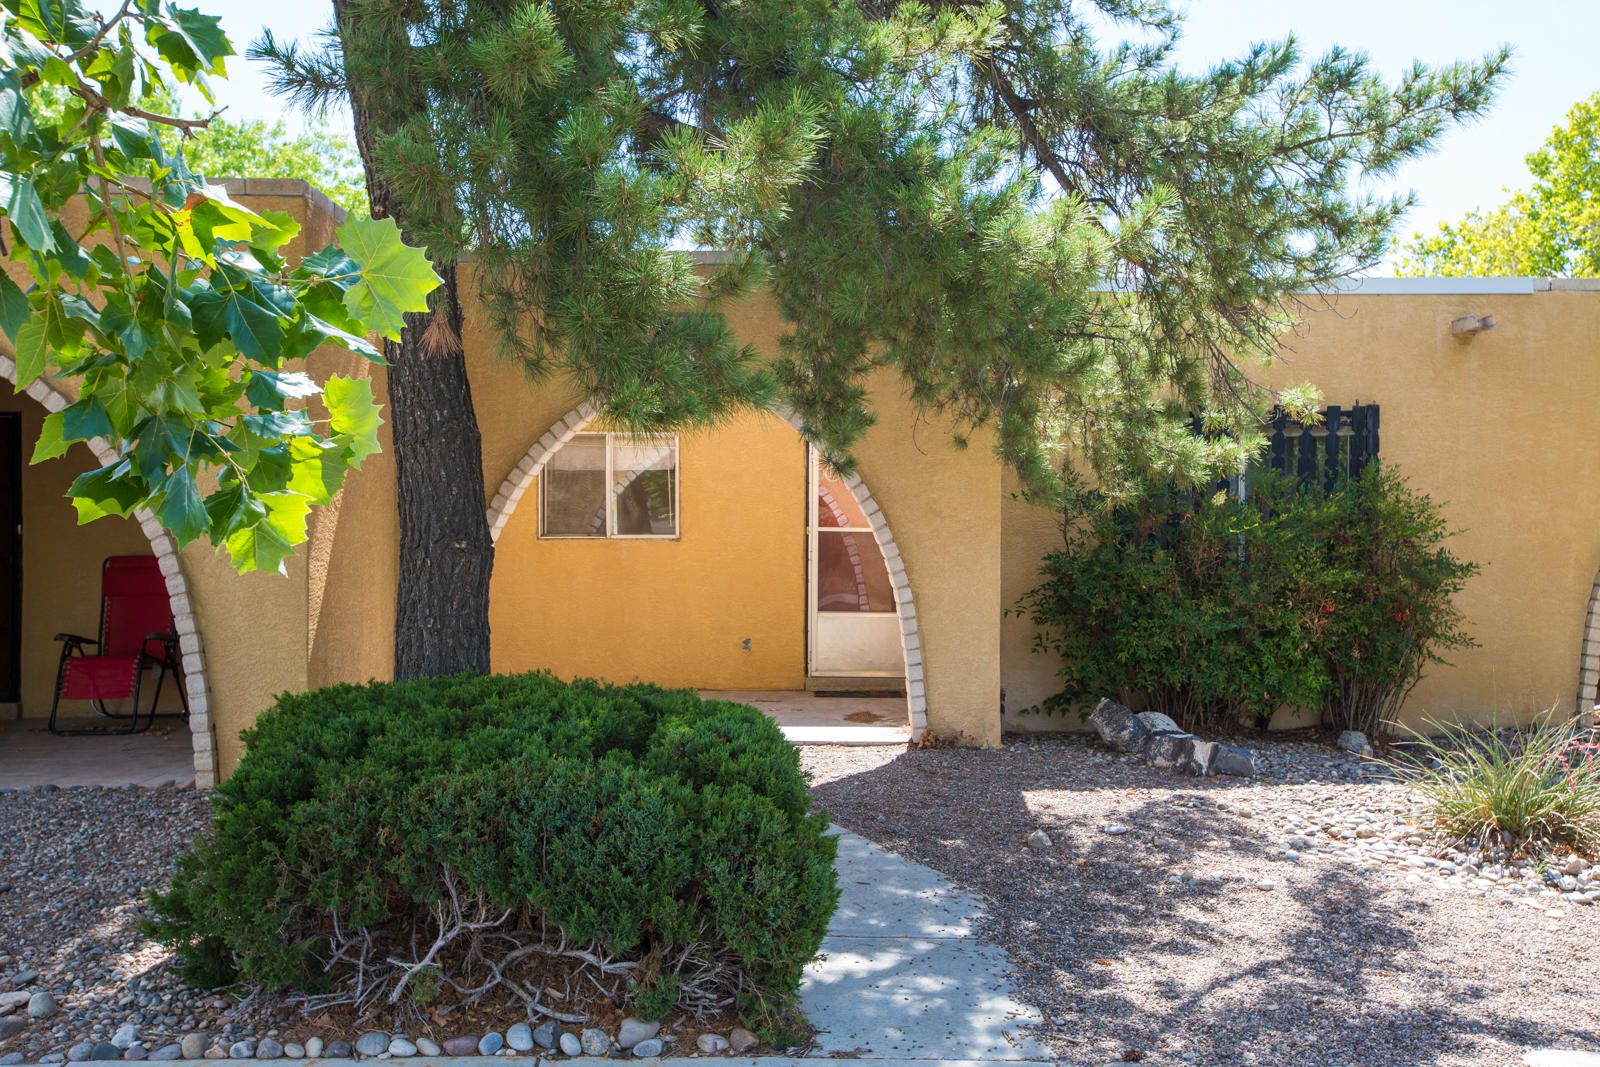 Investor alert!  Cash buyers encouraged! This is a wonderful 55+ community where HOA maintains the pool, community center, workout room, water, trash, common areas and all the fun! 2BR 2 Full Bath townhome in one of the most convenient areas to Rio Rancho. Settle into the park like landscaping and Mountain View's!  One occupant/buyer must be 55 or older. Property to convey in as is condition.